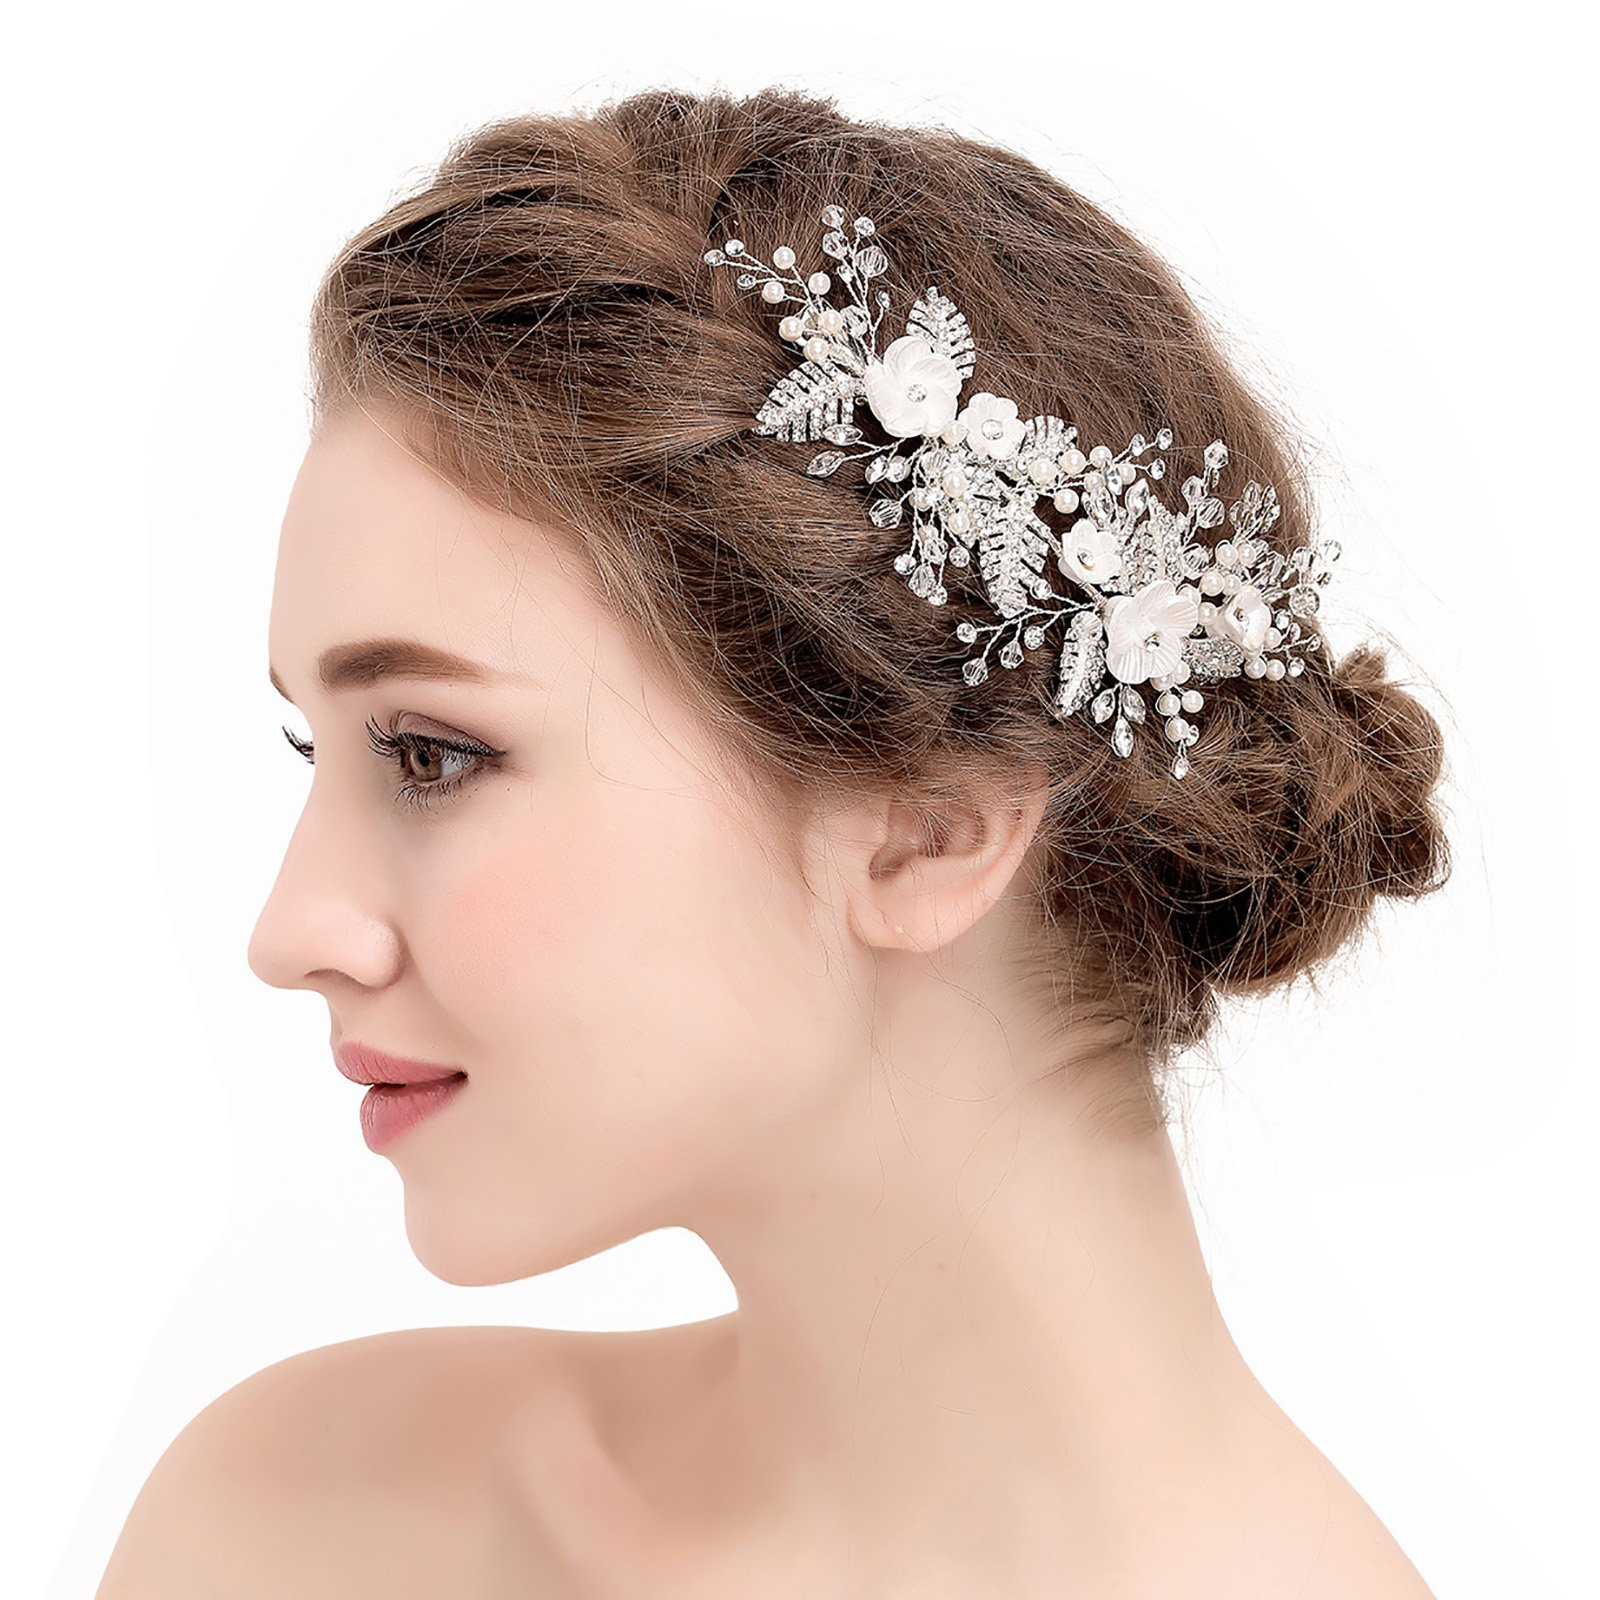 SWEETV Handmade Wedding Hair Clip Pin Pearl Comb Rhinestone Barrette Floral Women Hair Jewelry